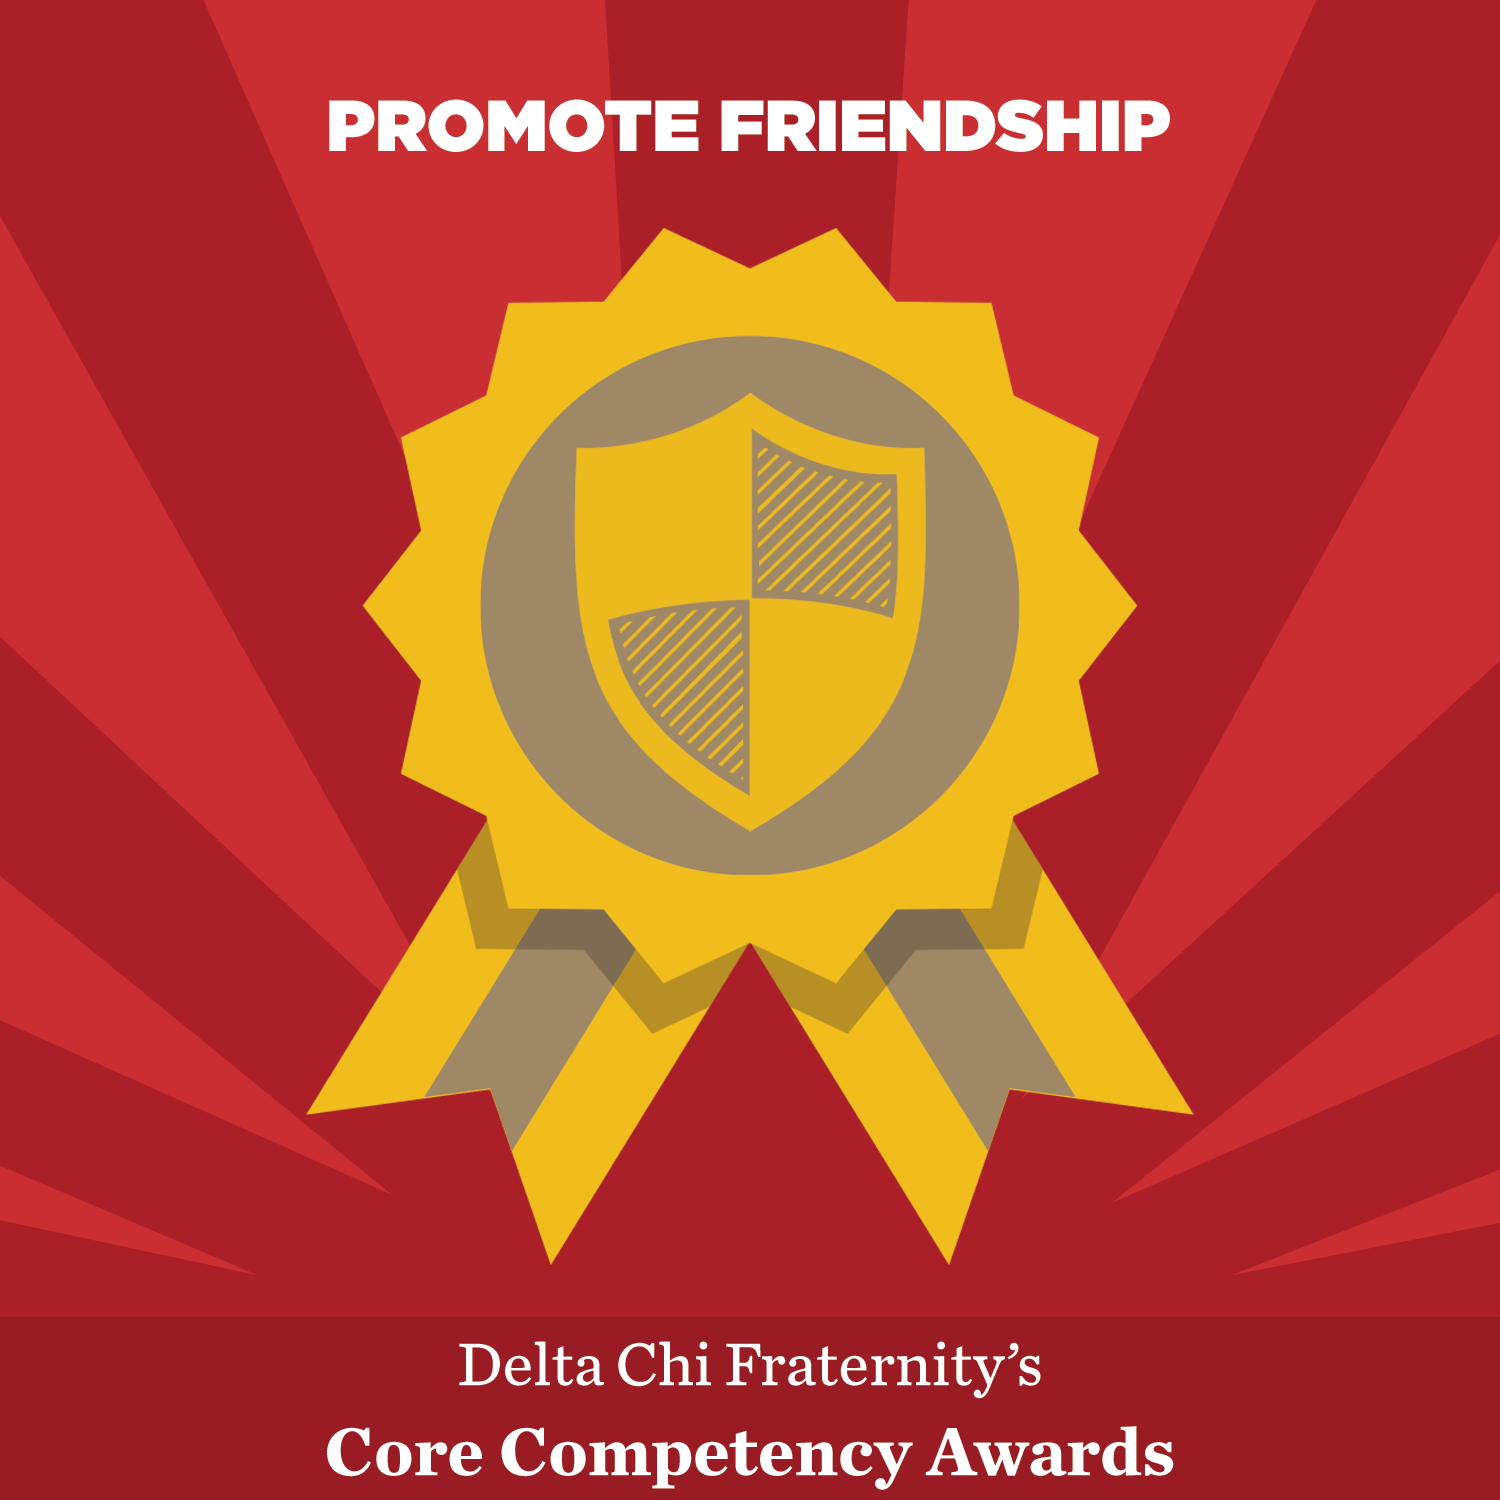 Core Competency Awards (Promote Friendship)